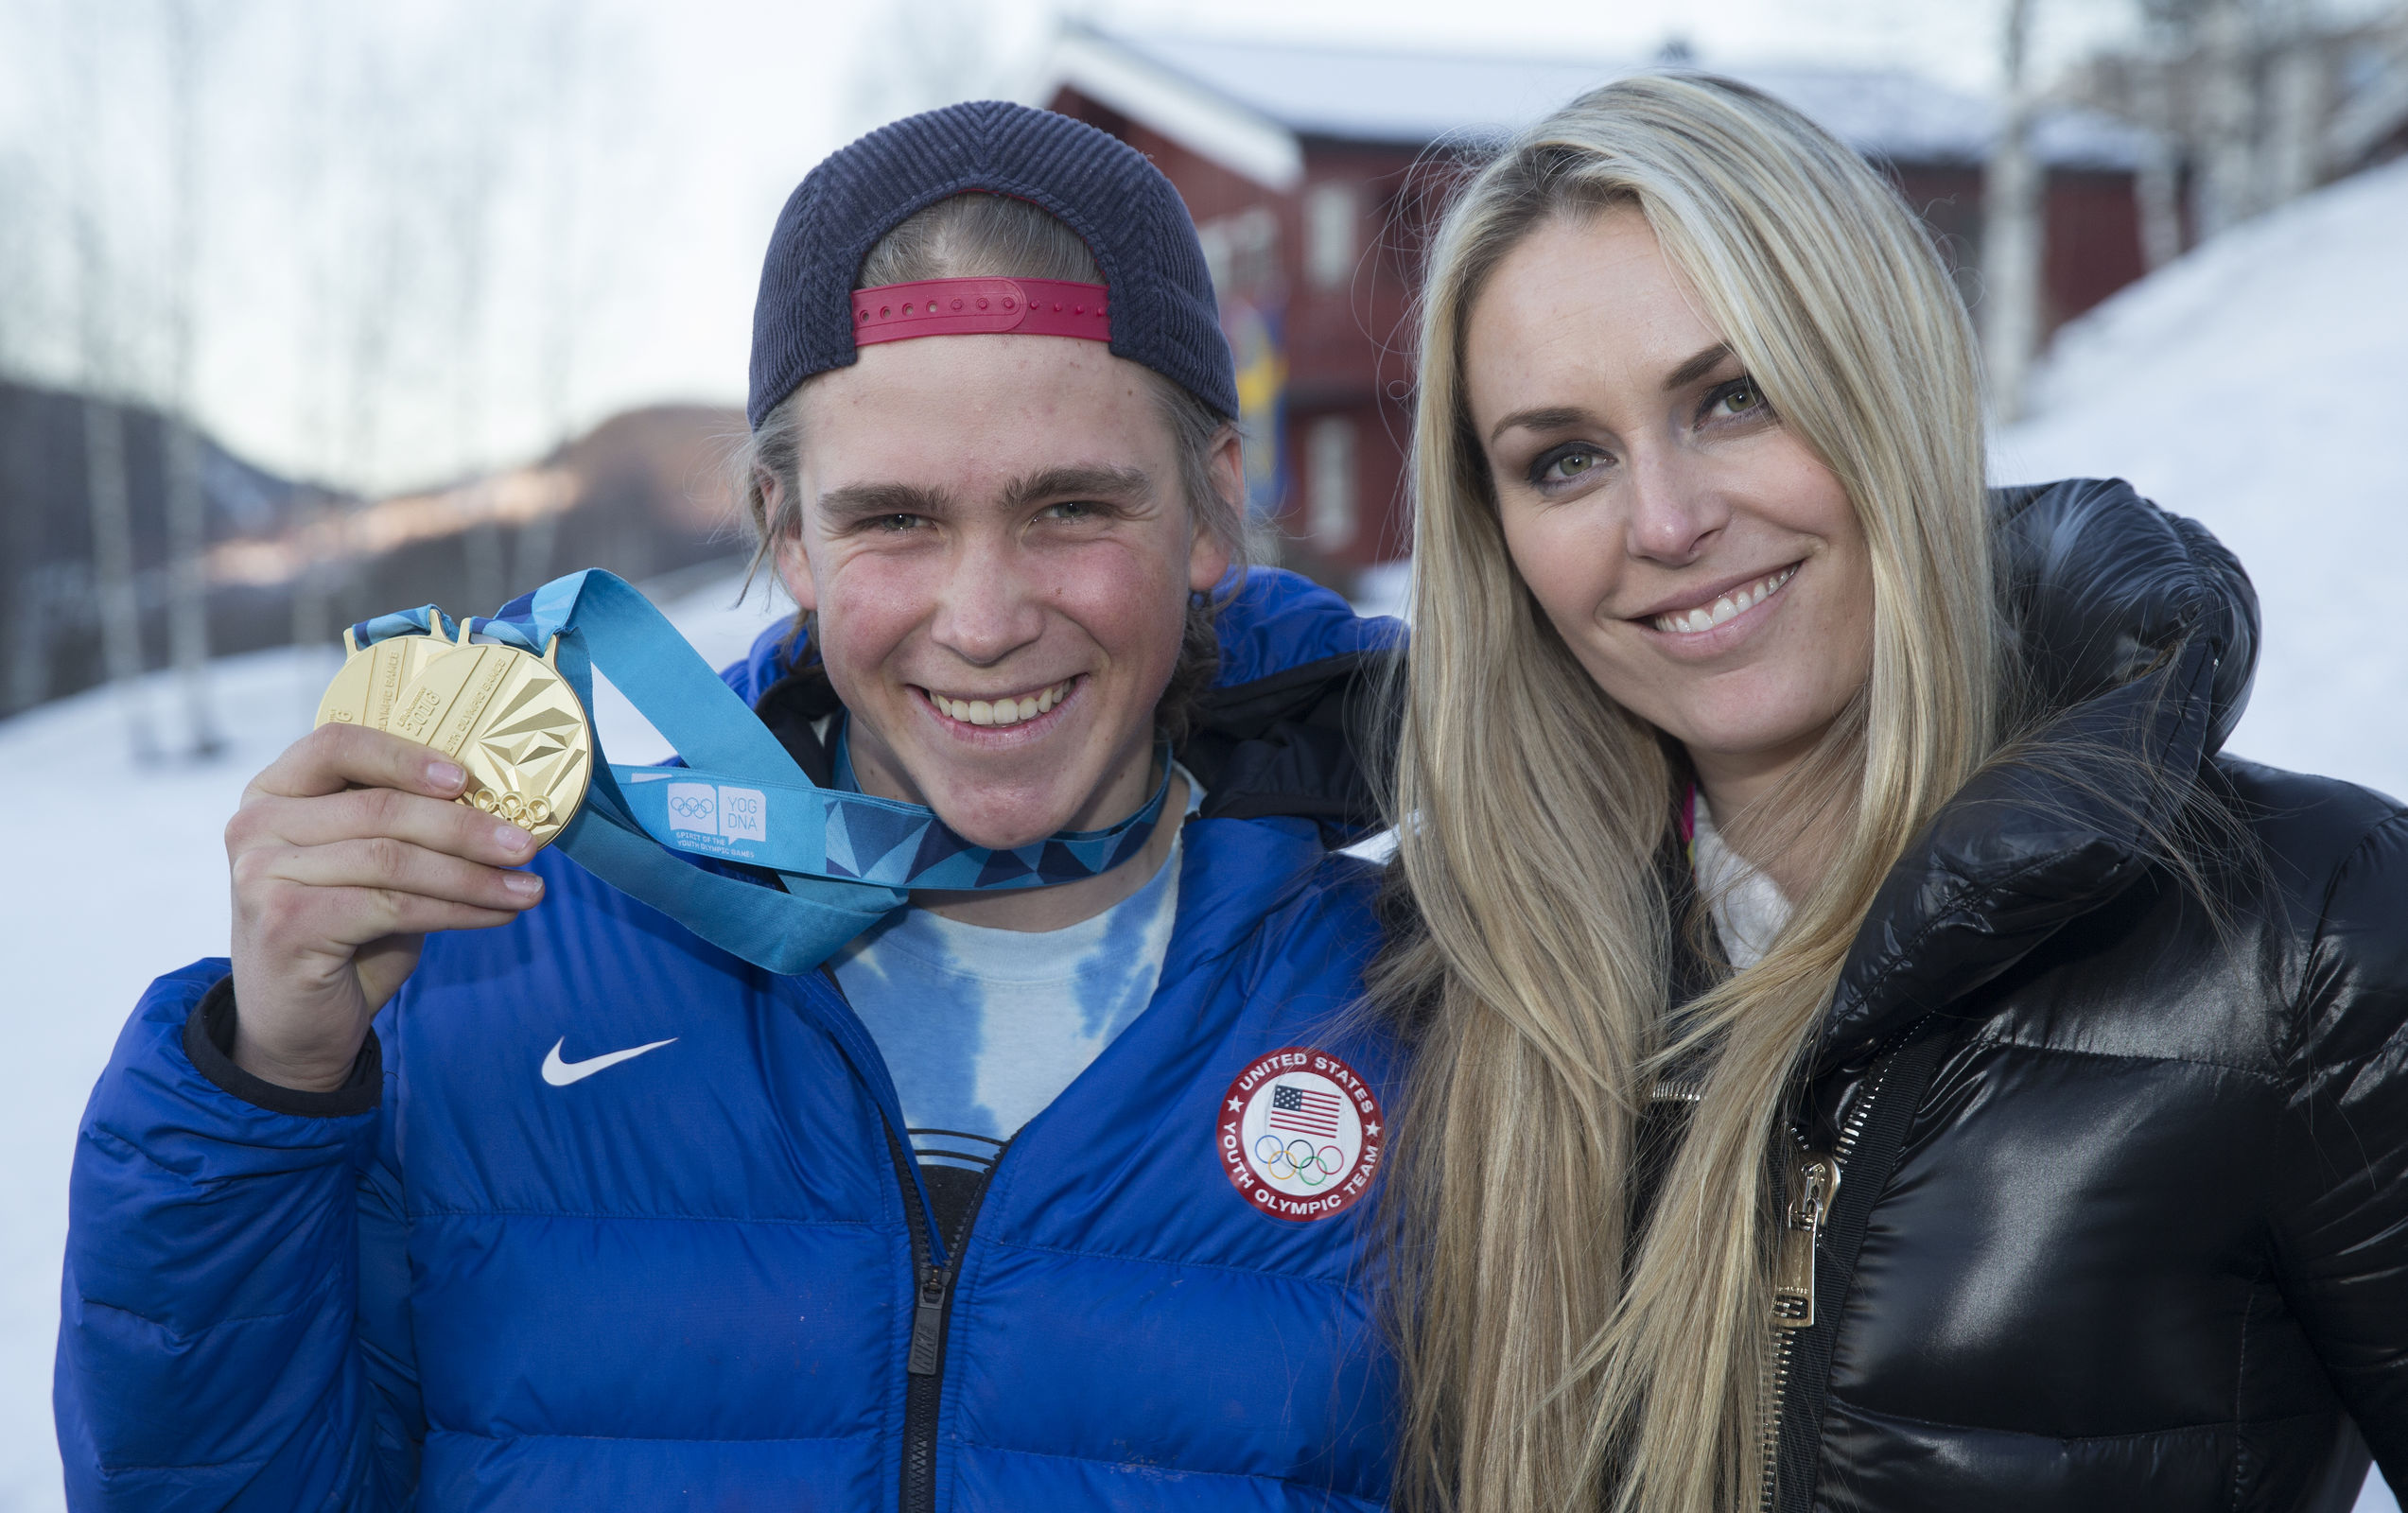 Double Youth Olympic Games gold medallist River Radamus meets Lindsey Vonn